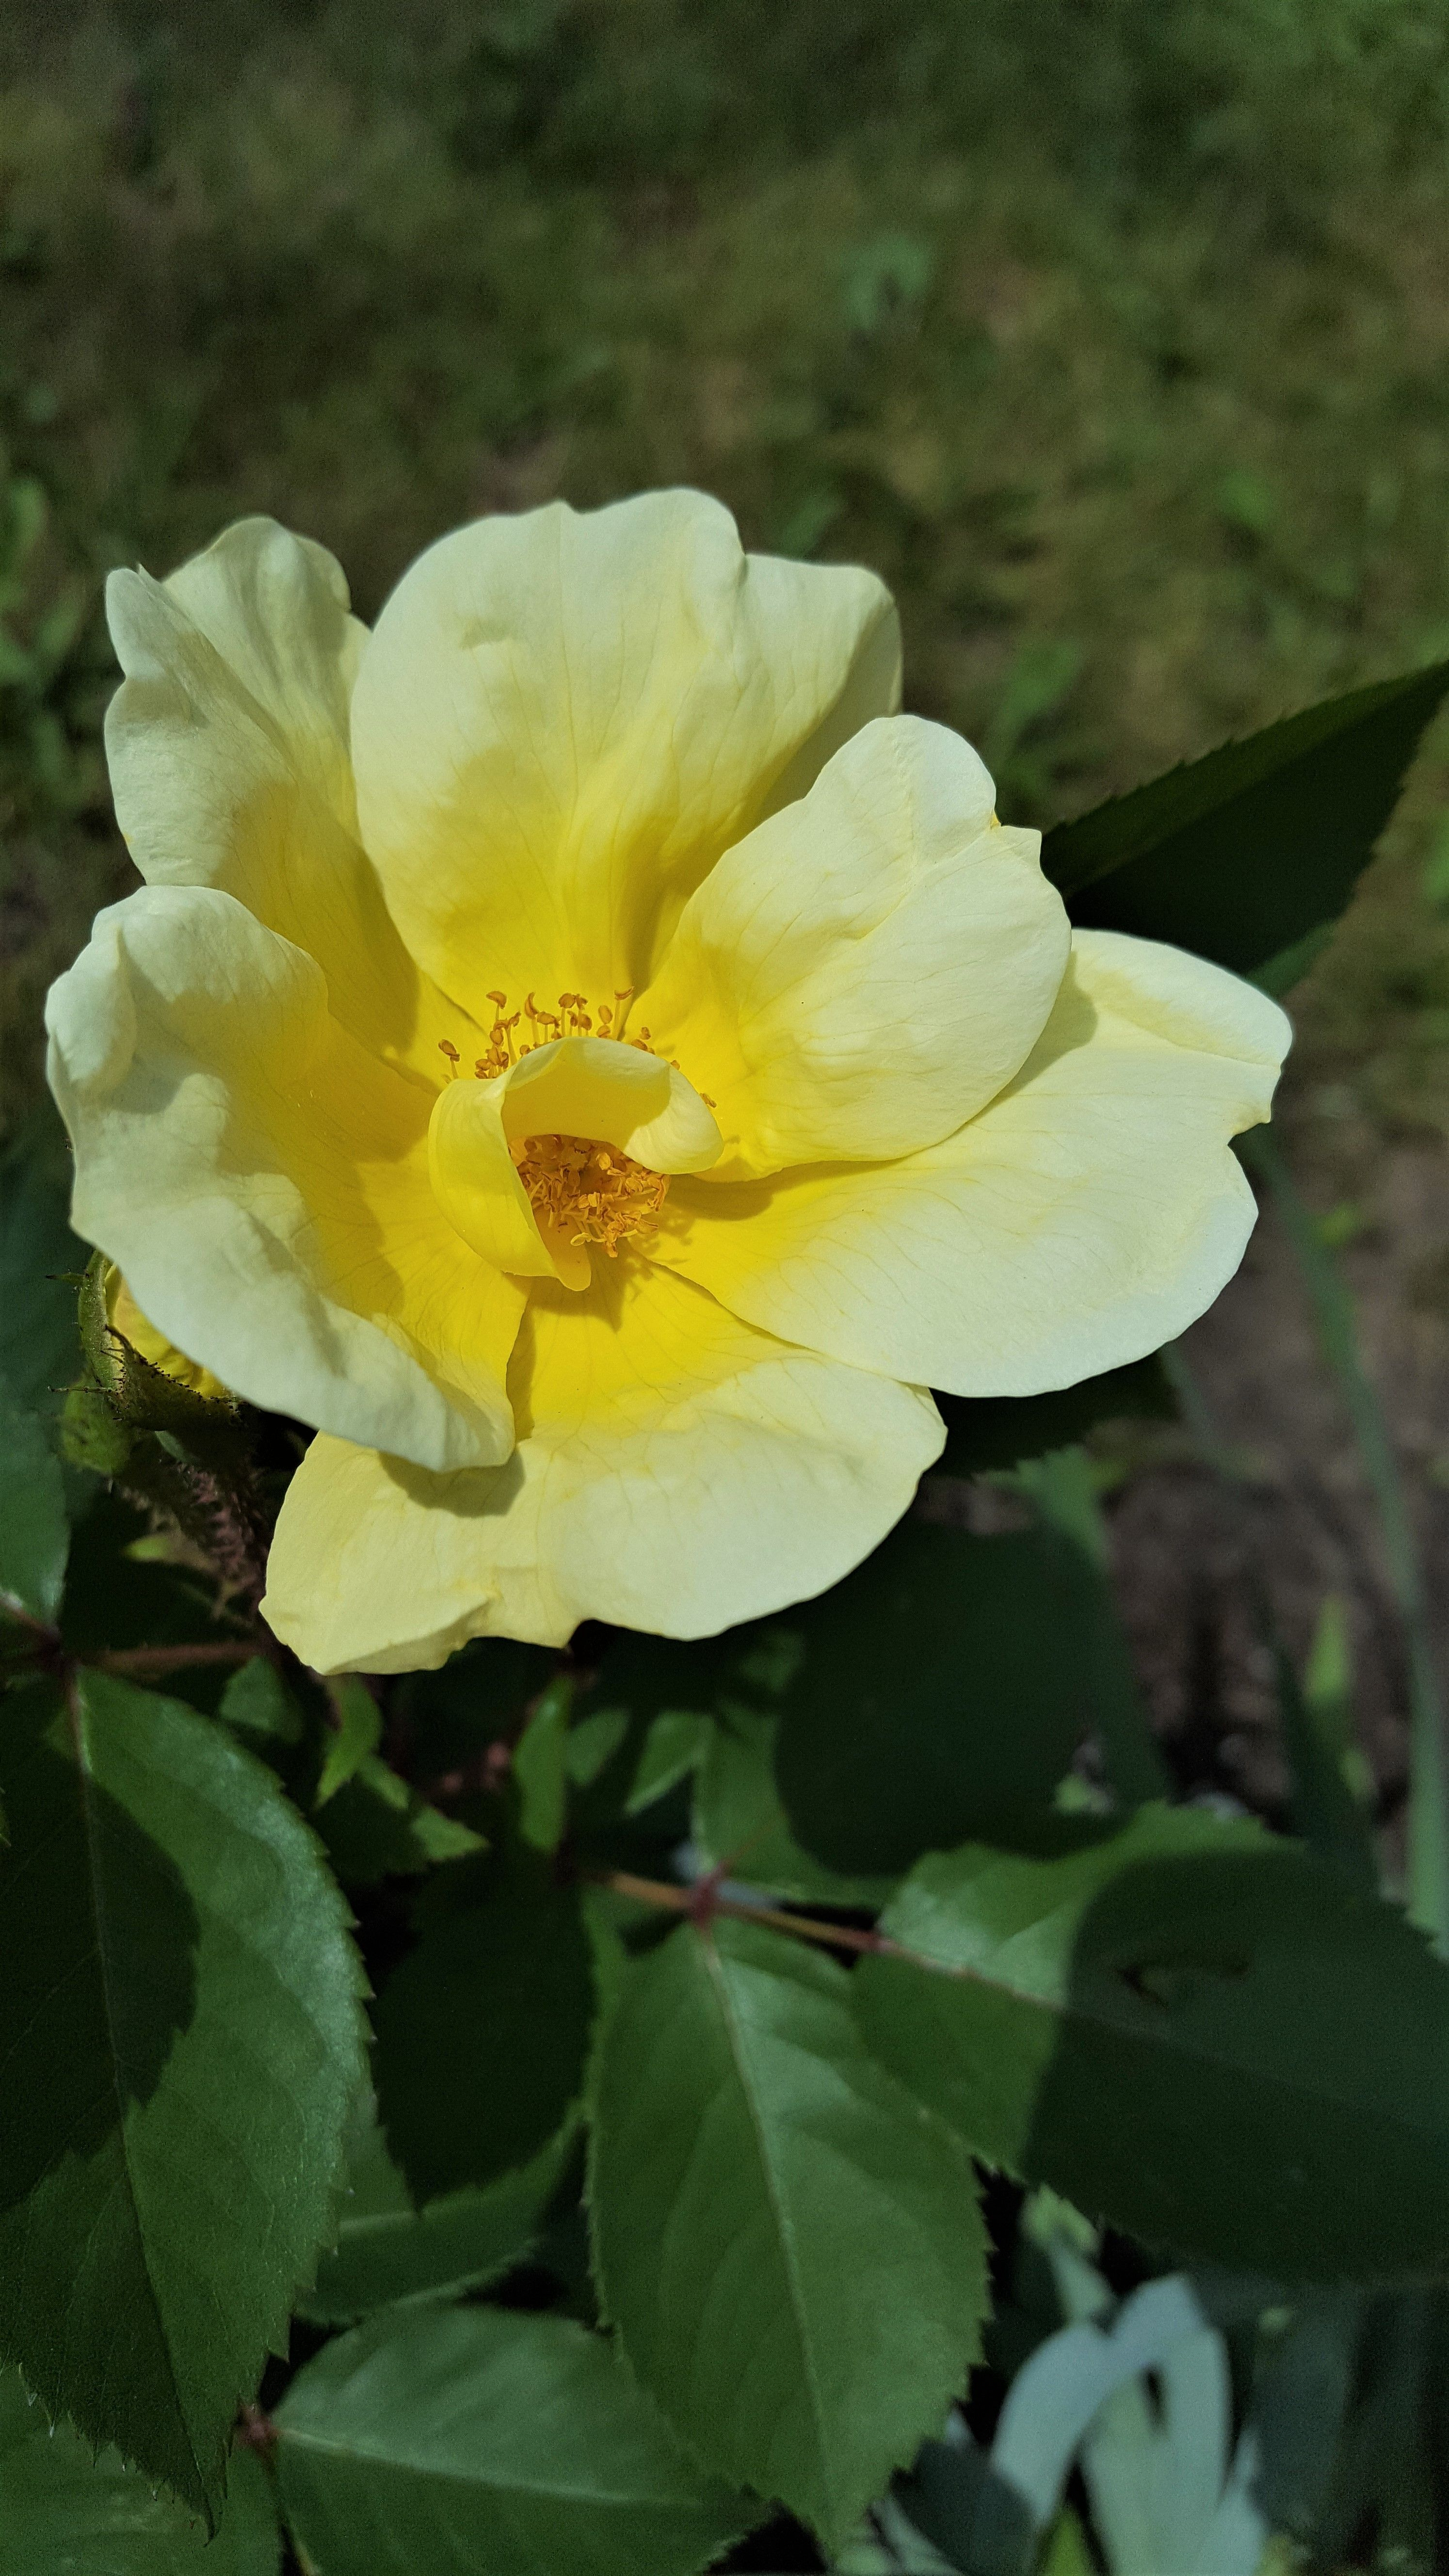 Large White & yellow Rose on the bush for art or color inspiration ...